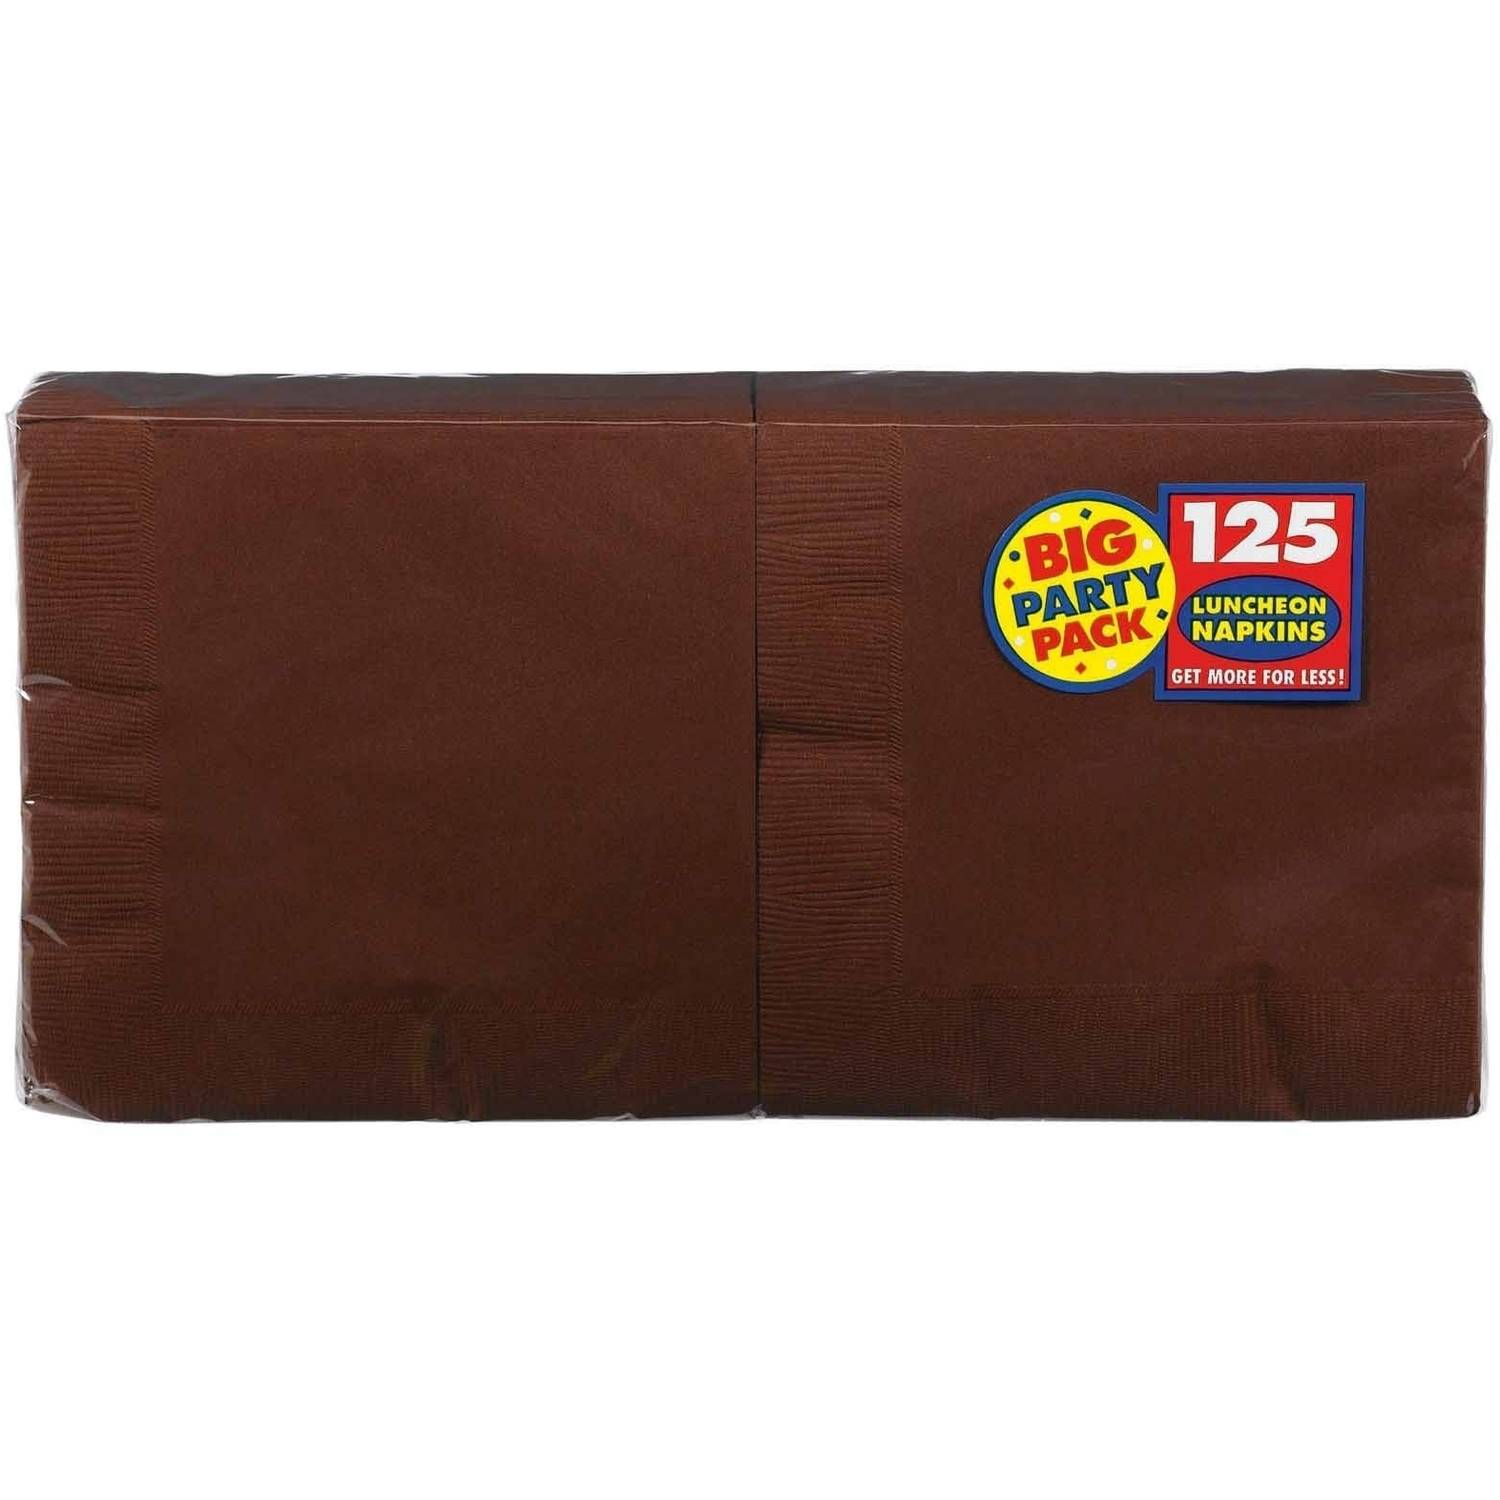 Chocolate Brown Big Party Pack, Lunch Napkins, Pack of 125